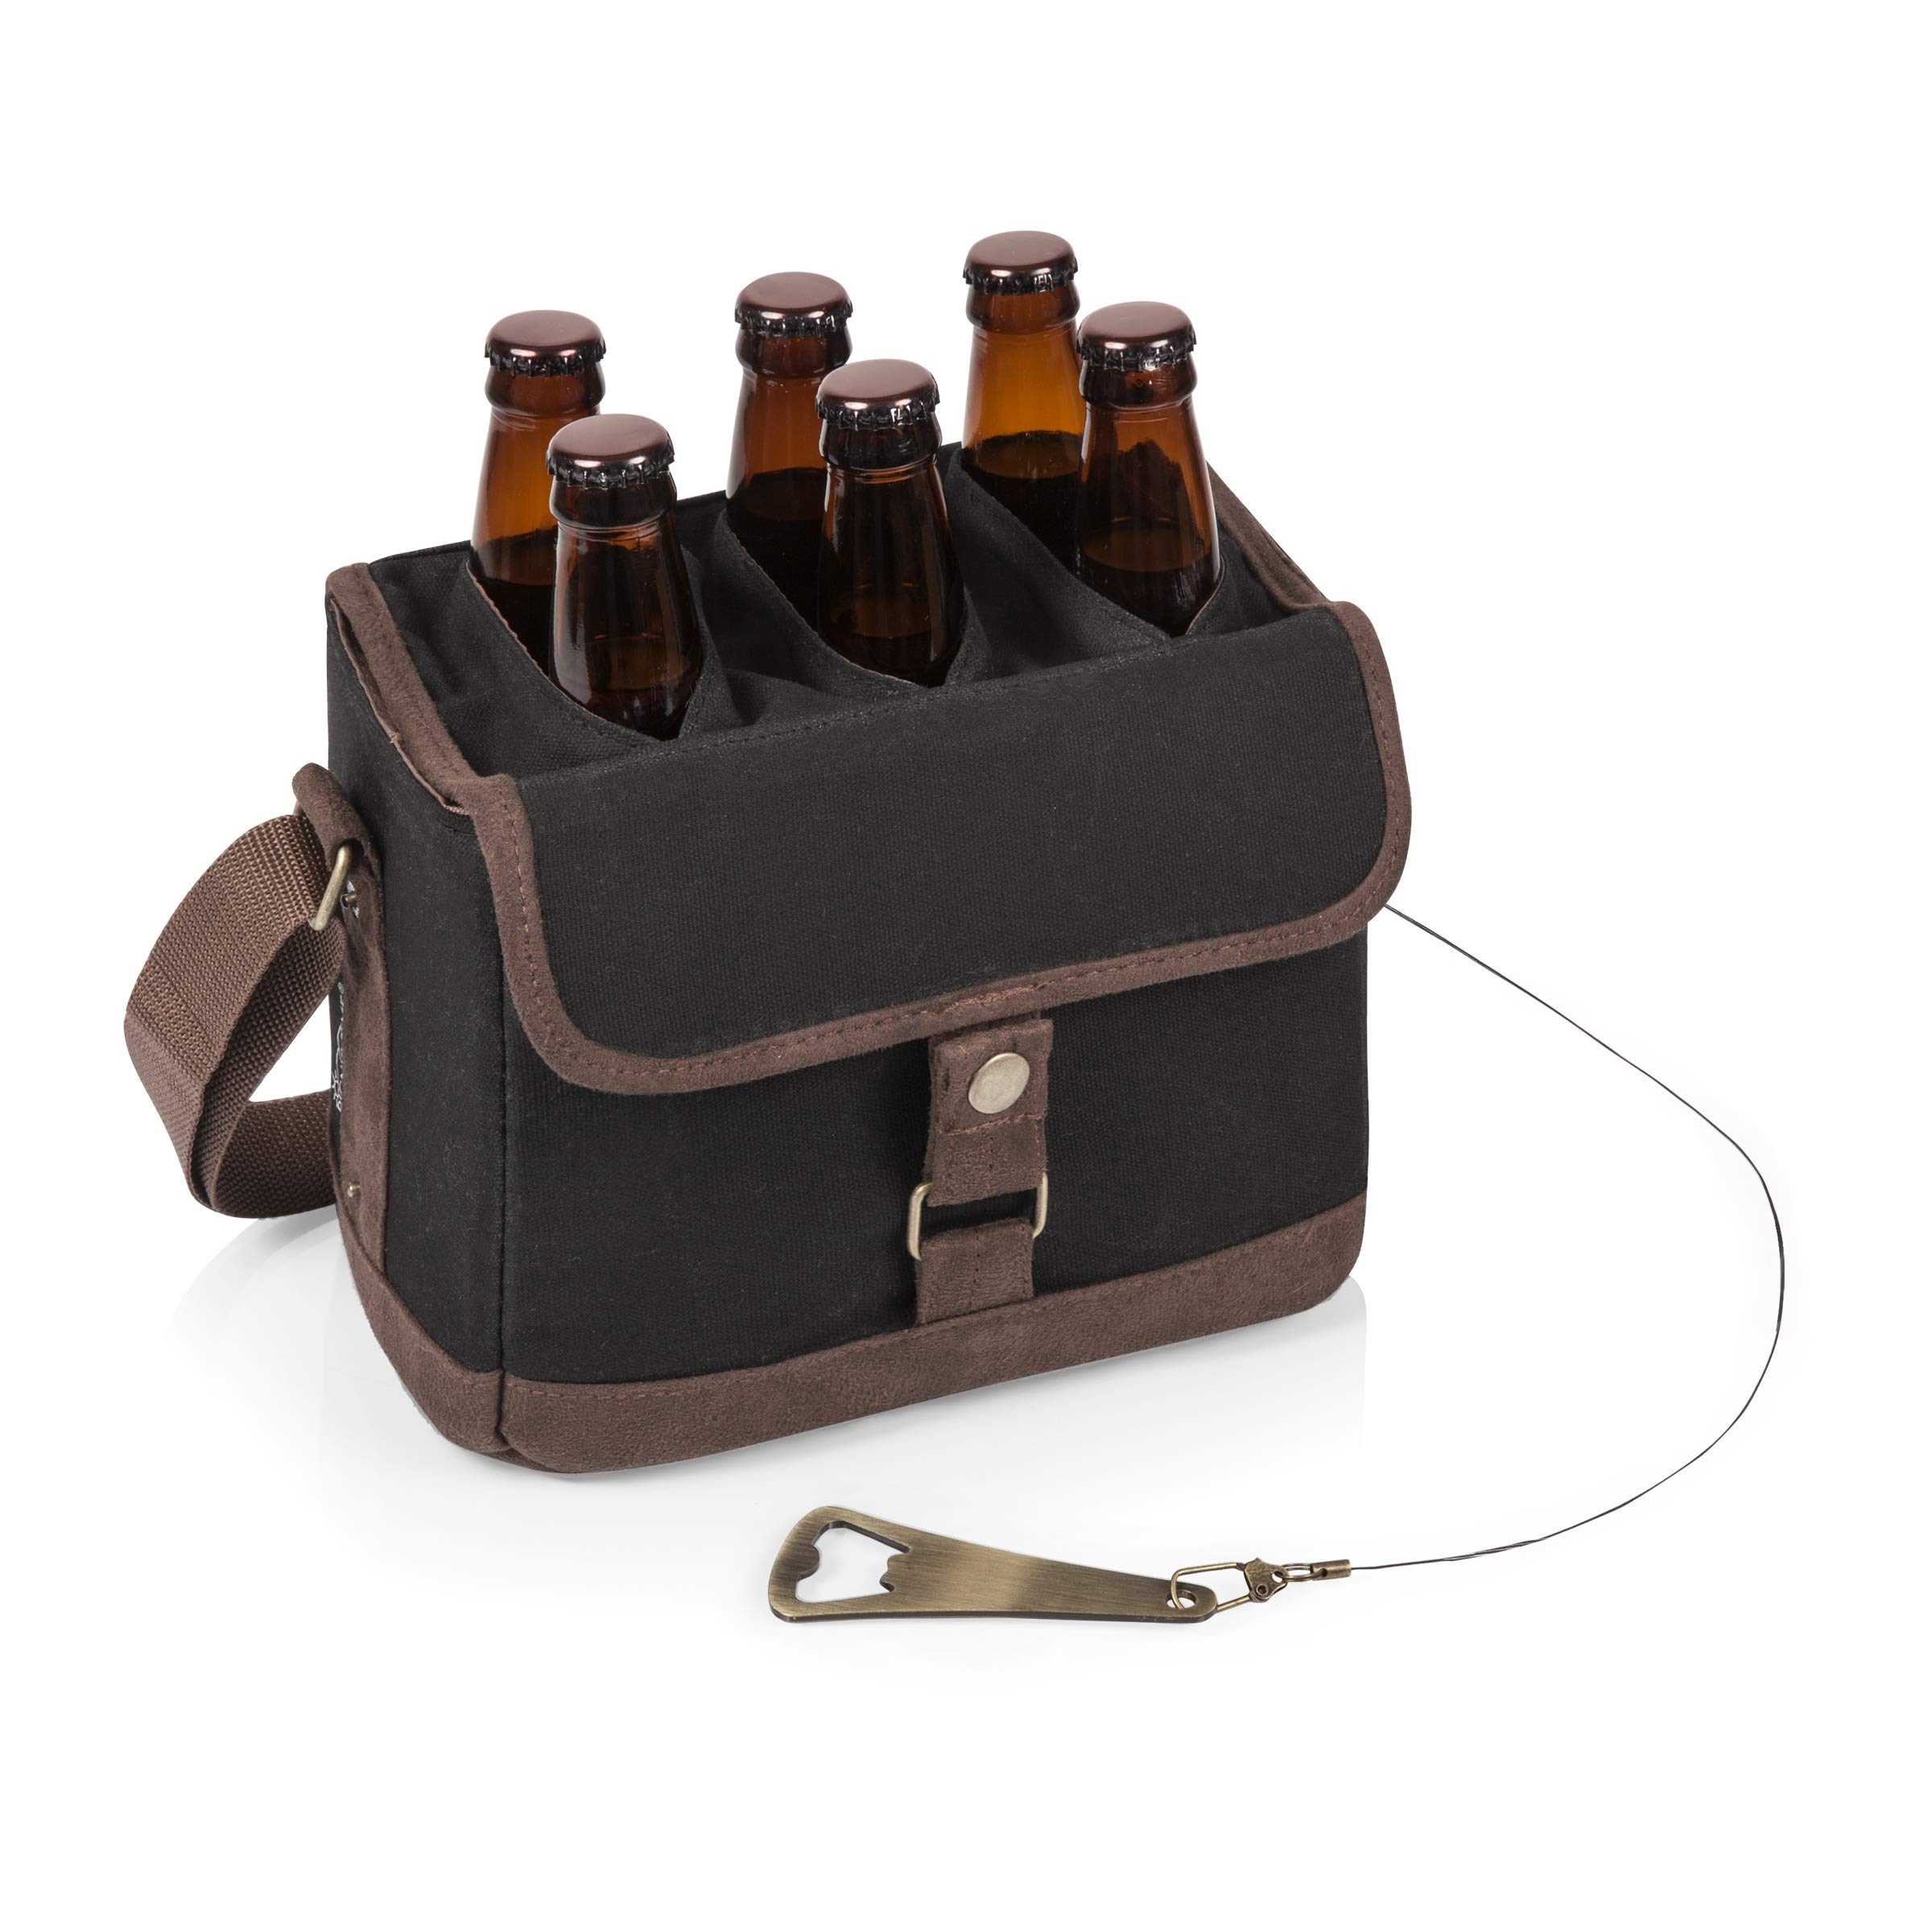 Legacy-A Picnic Time Brand 6-Bottle Beer Caddy with Integrated Bottle Opener, Black/Brown by LEGACY - a Picnic Time Brand (Image #1)